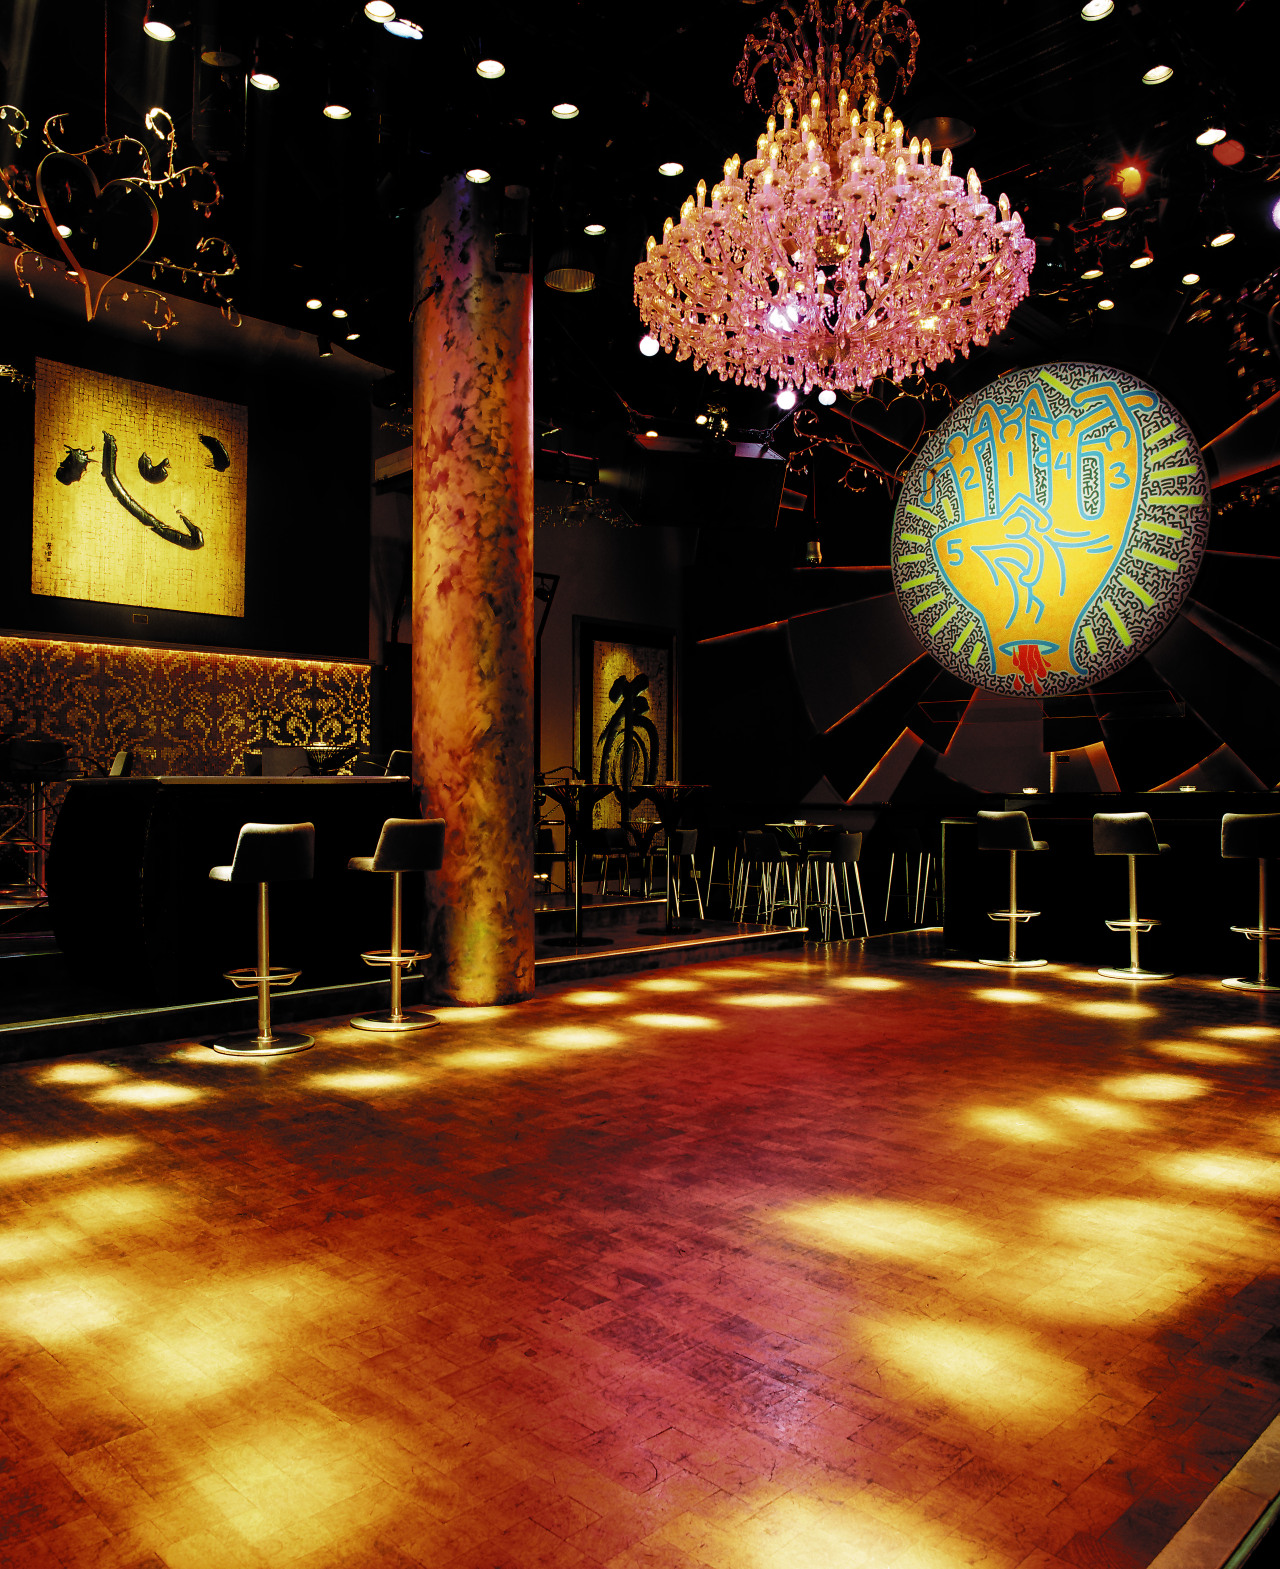 view of the dancefloor featuring end grain wood entertainment, lighting, night, stage, theatre, black